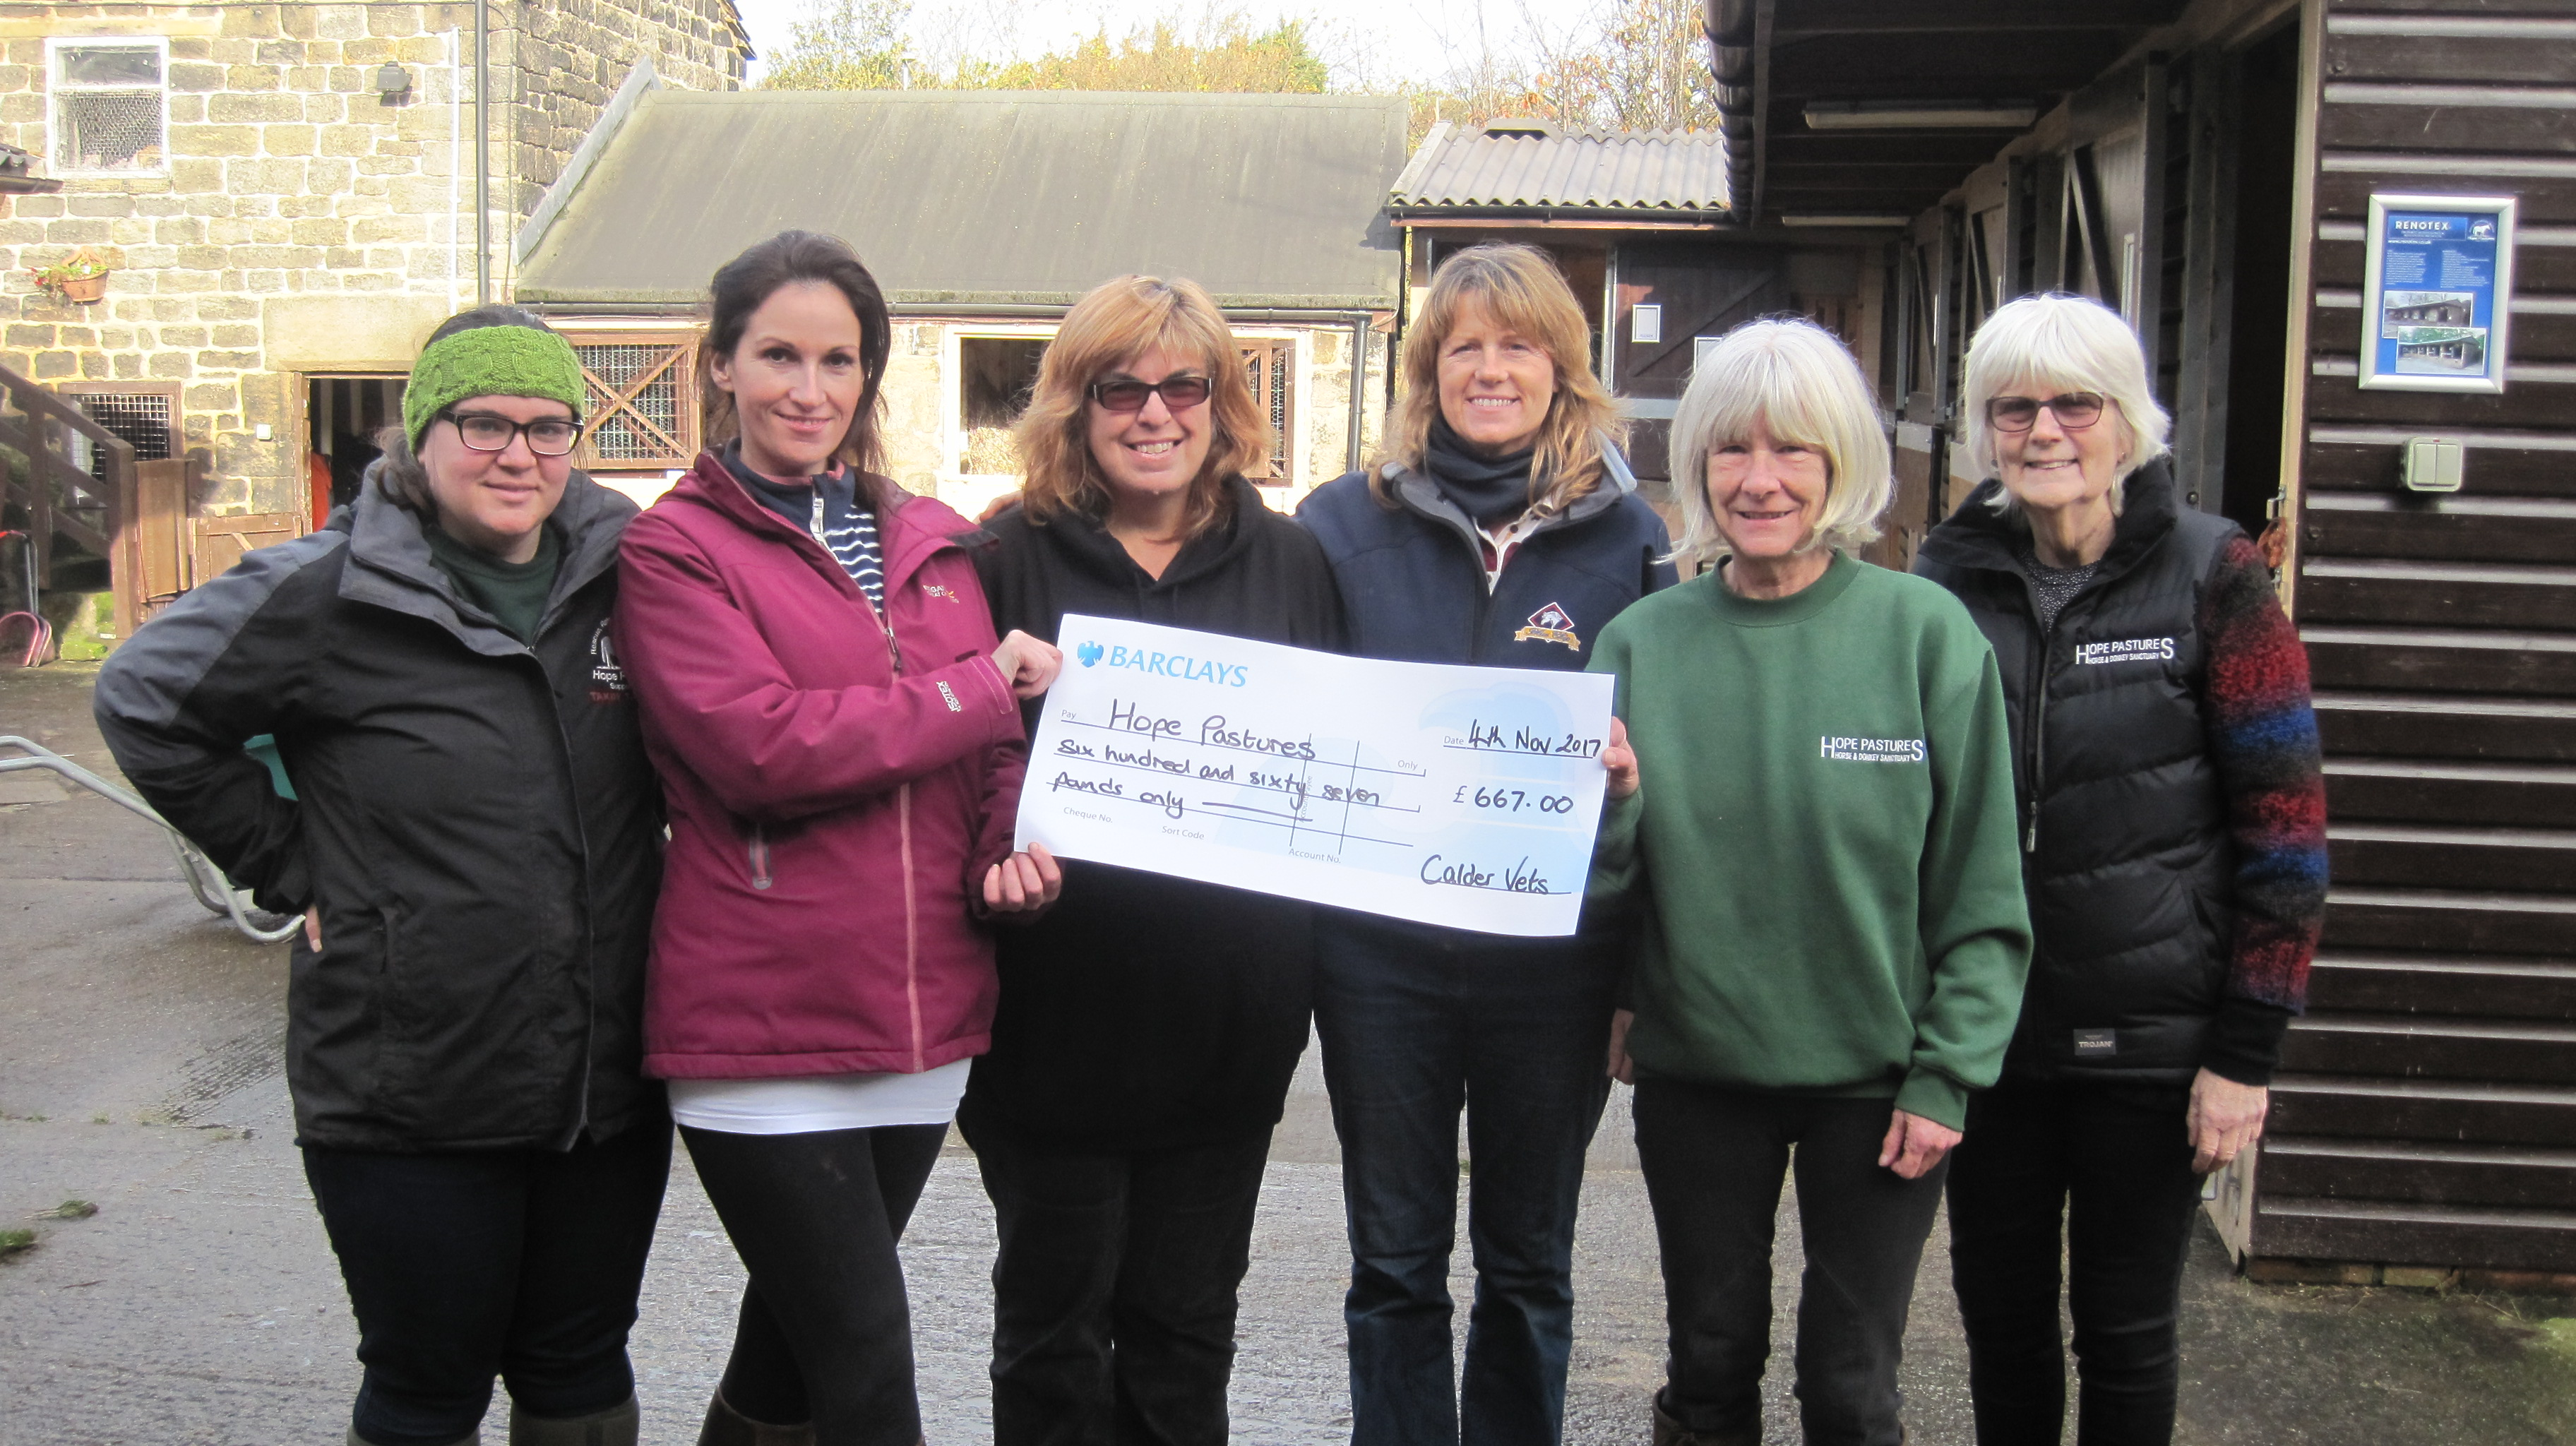 Calder Vets staff raise more than £650 for Hope Pastures